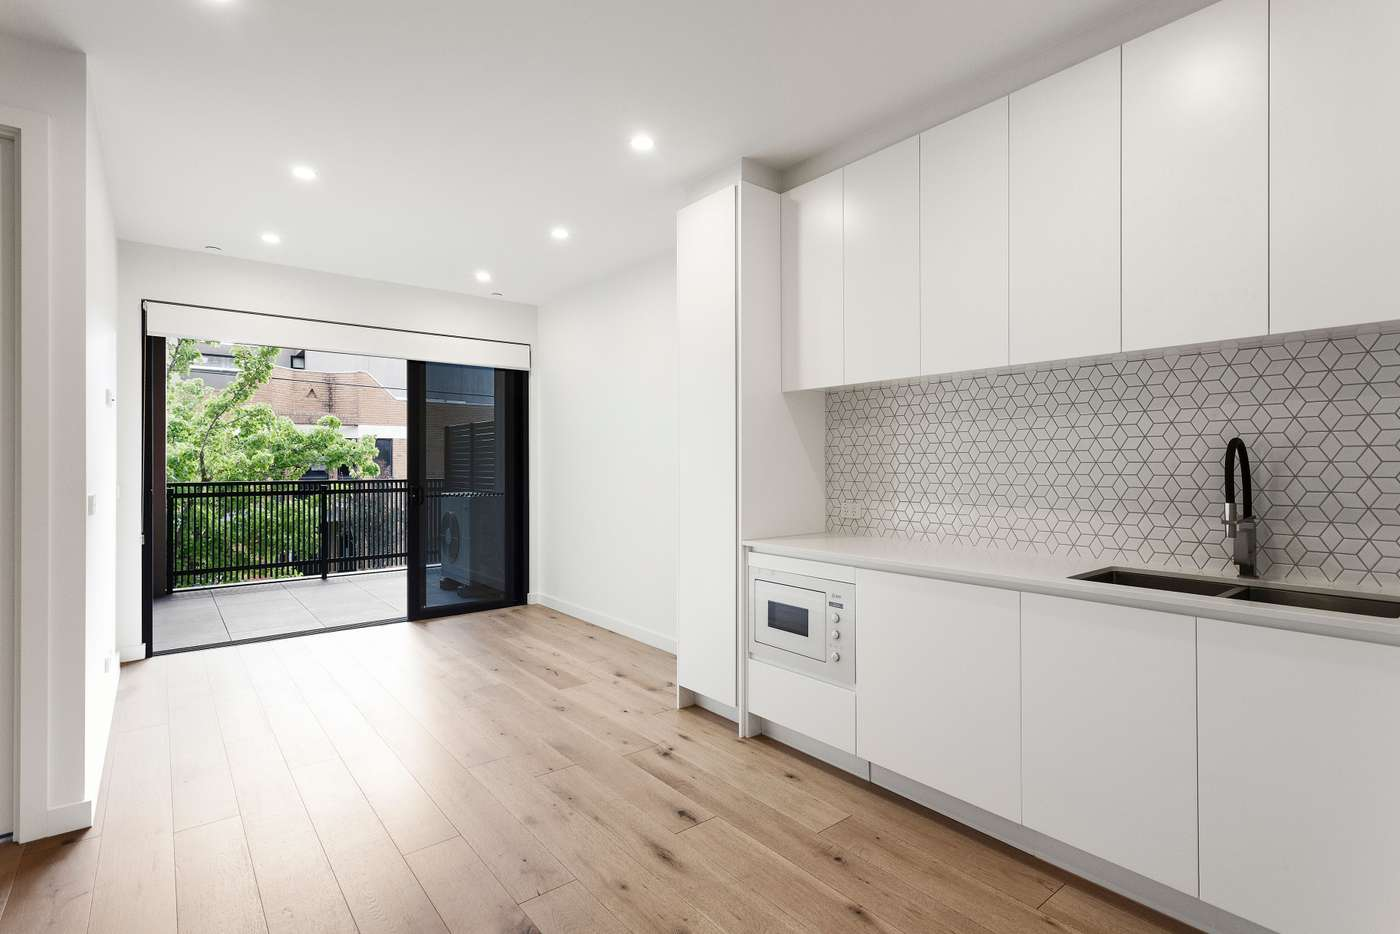 Main view of Homely apartment listing, 102/323 Neerim Road, Carnegie VIC 3163